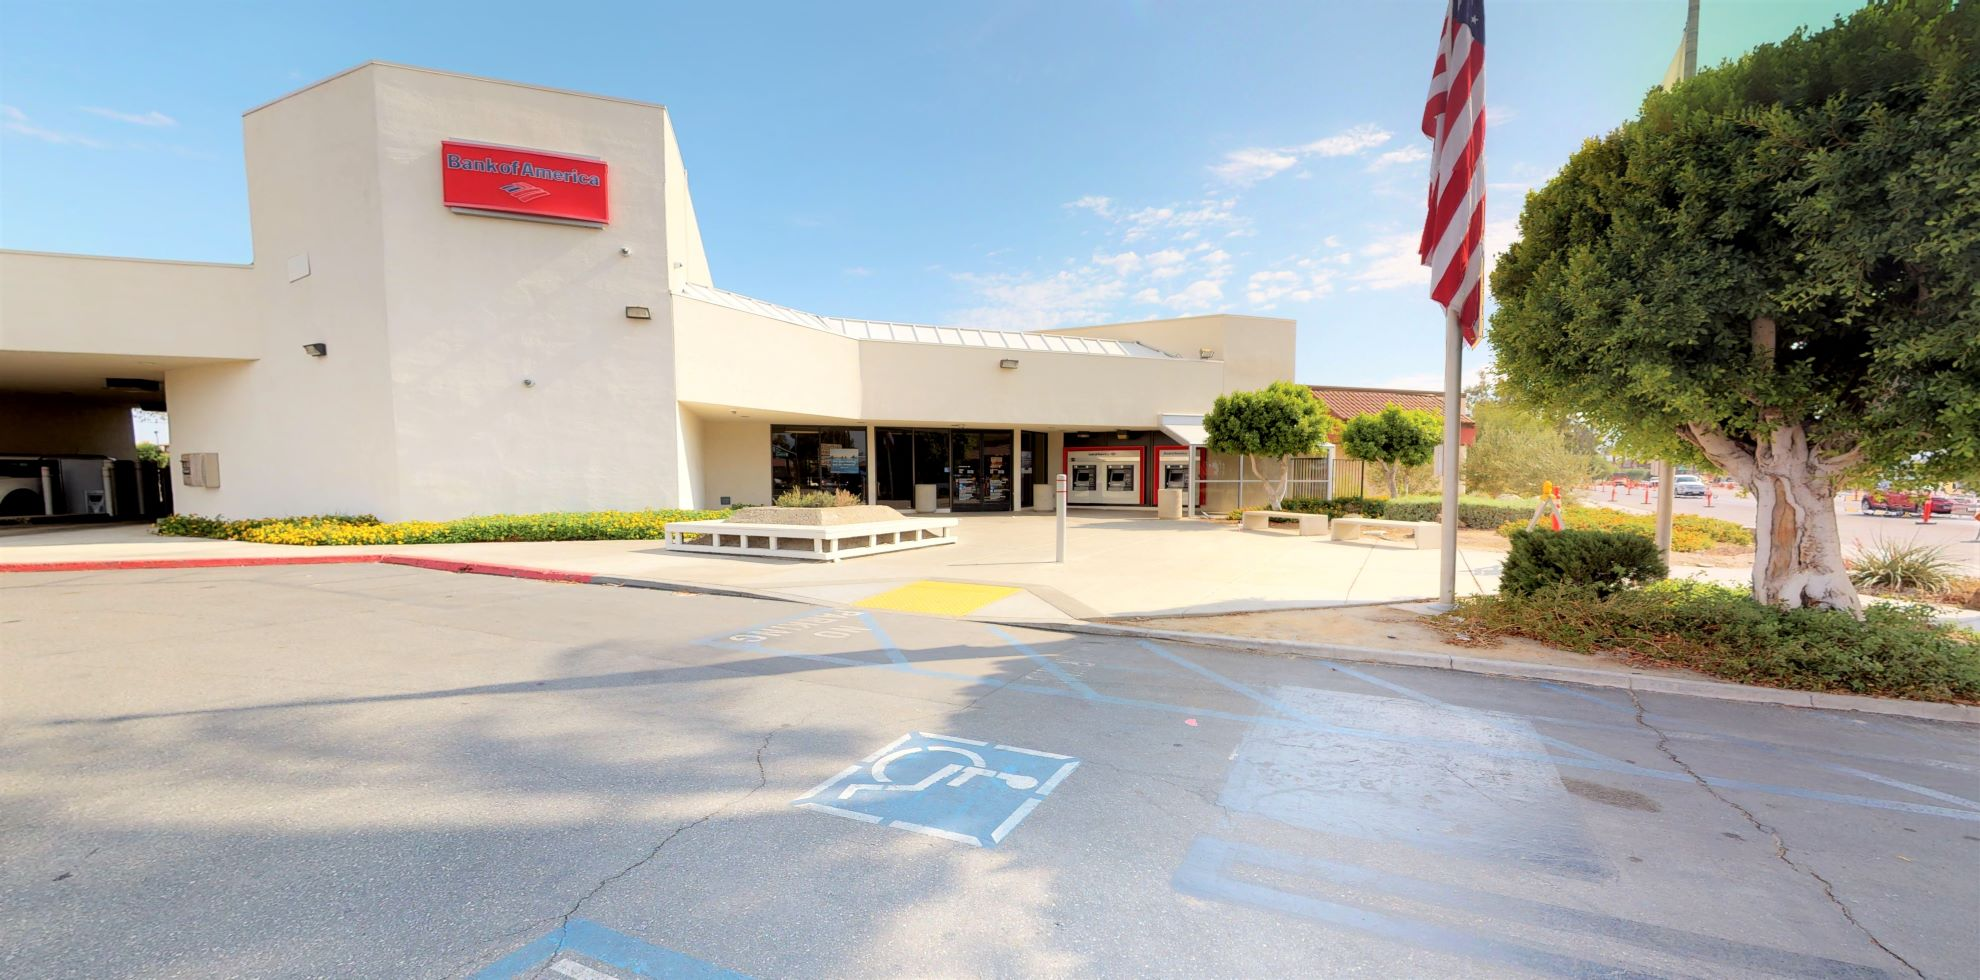 Bank of America financial center with drive-thru ATM   81800 US Highway 111, Indio, CA 92201